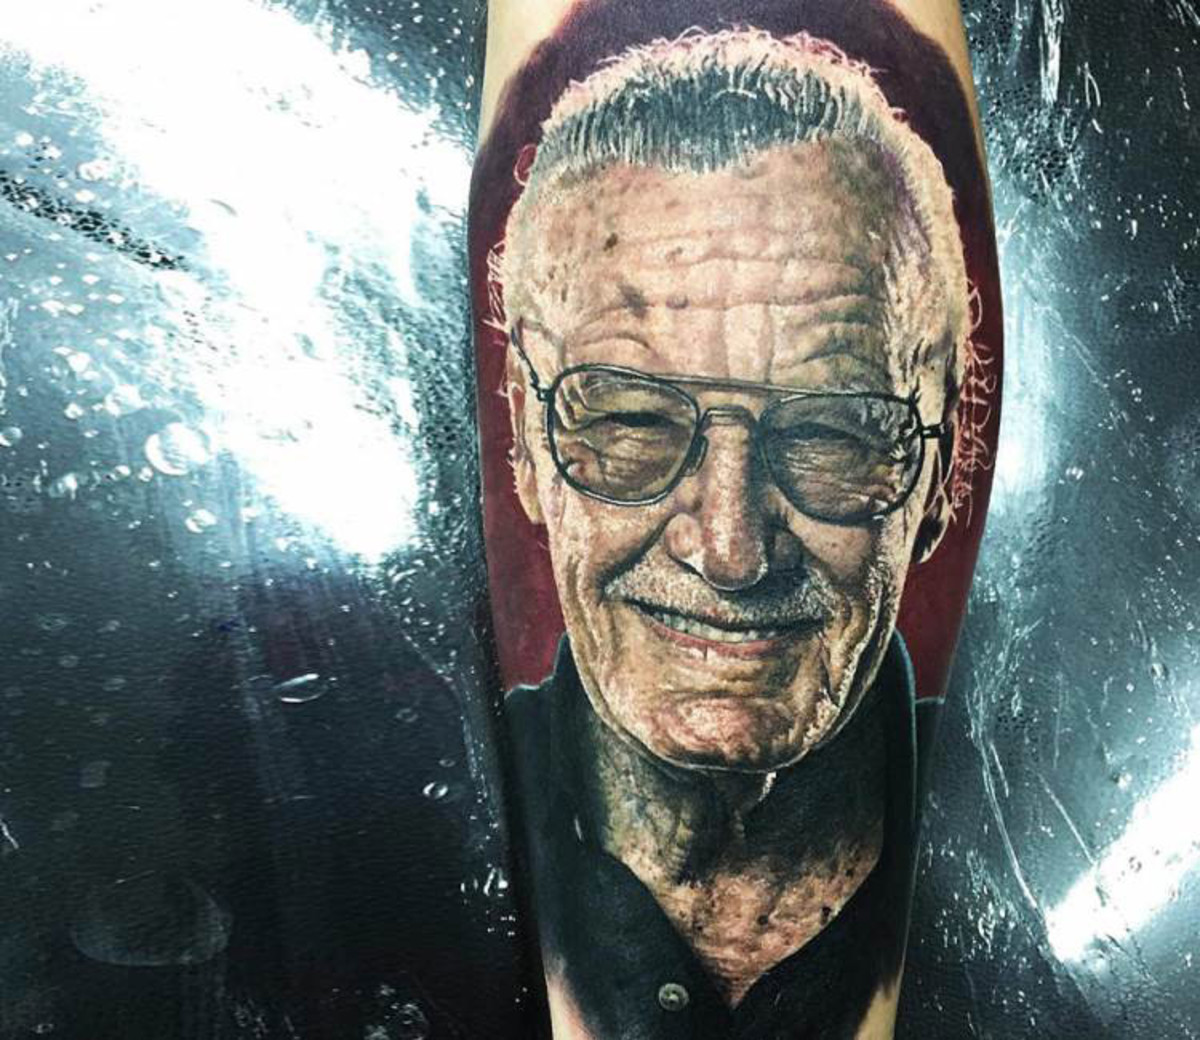 artist--steve-butcher--stan-lee-tattoo_16274172221